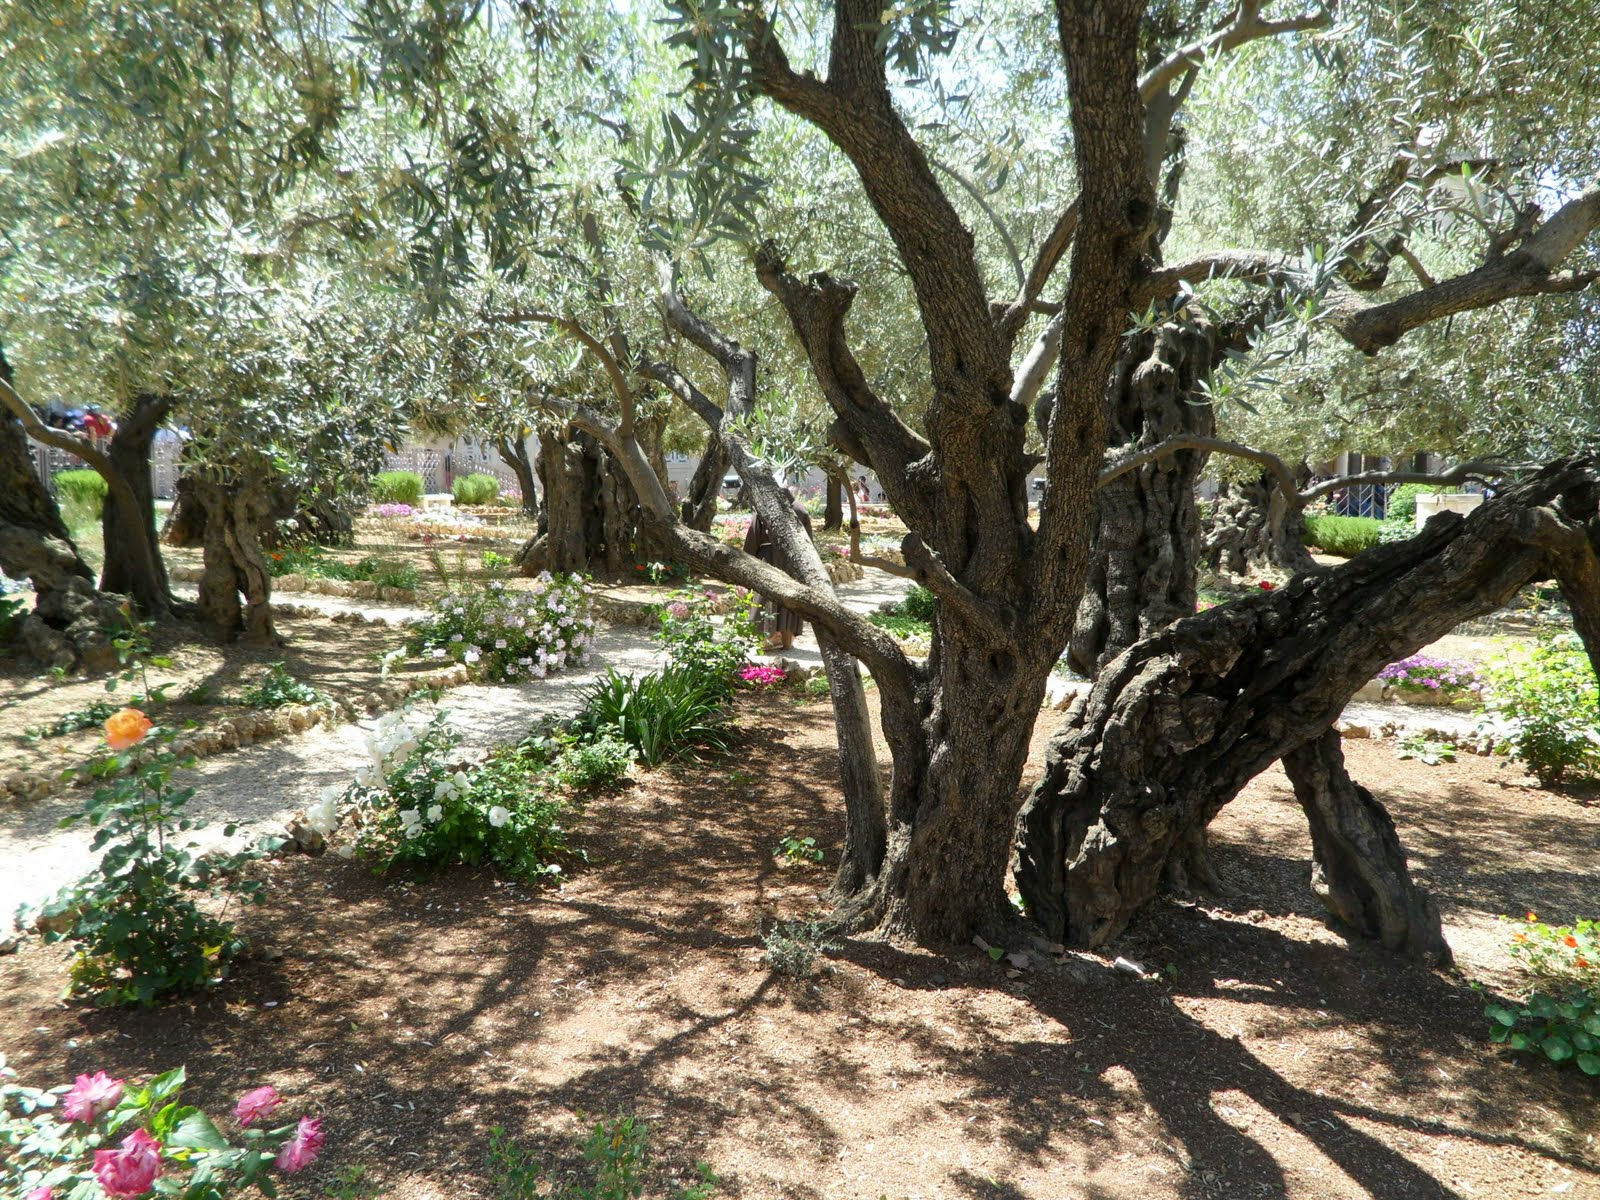 I love to tell the story garden of gethsemane for Age olive trees garden gethsemane